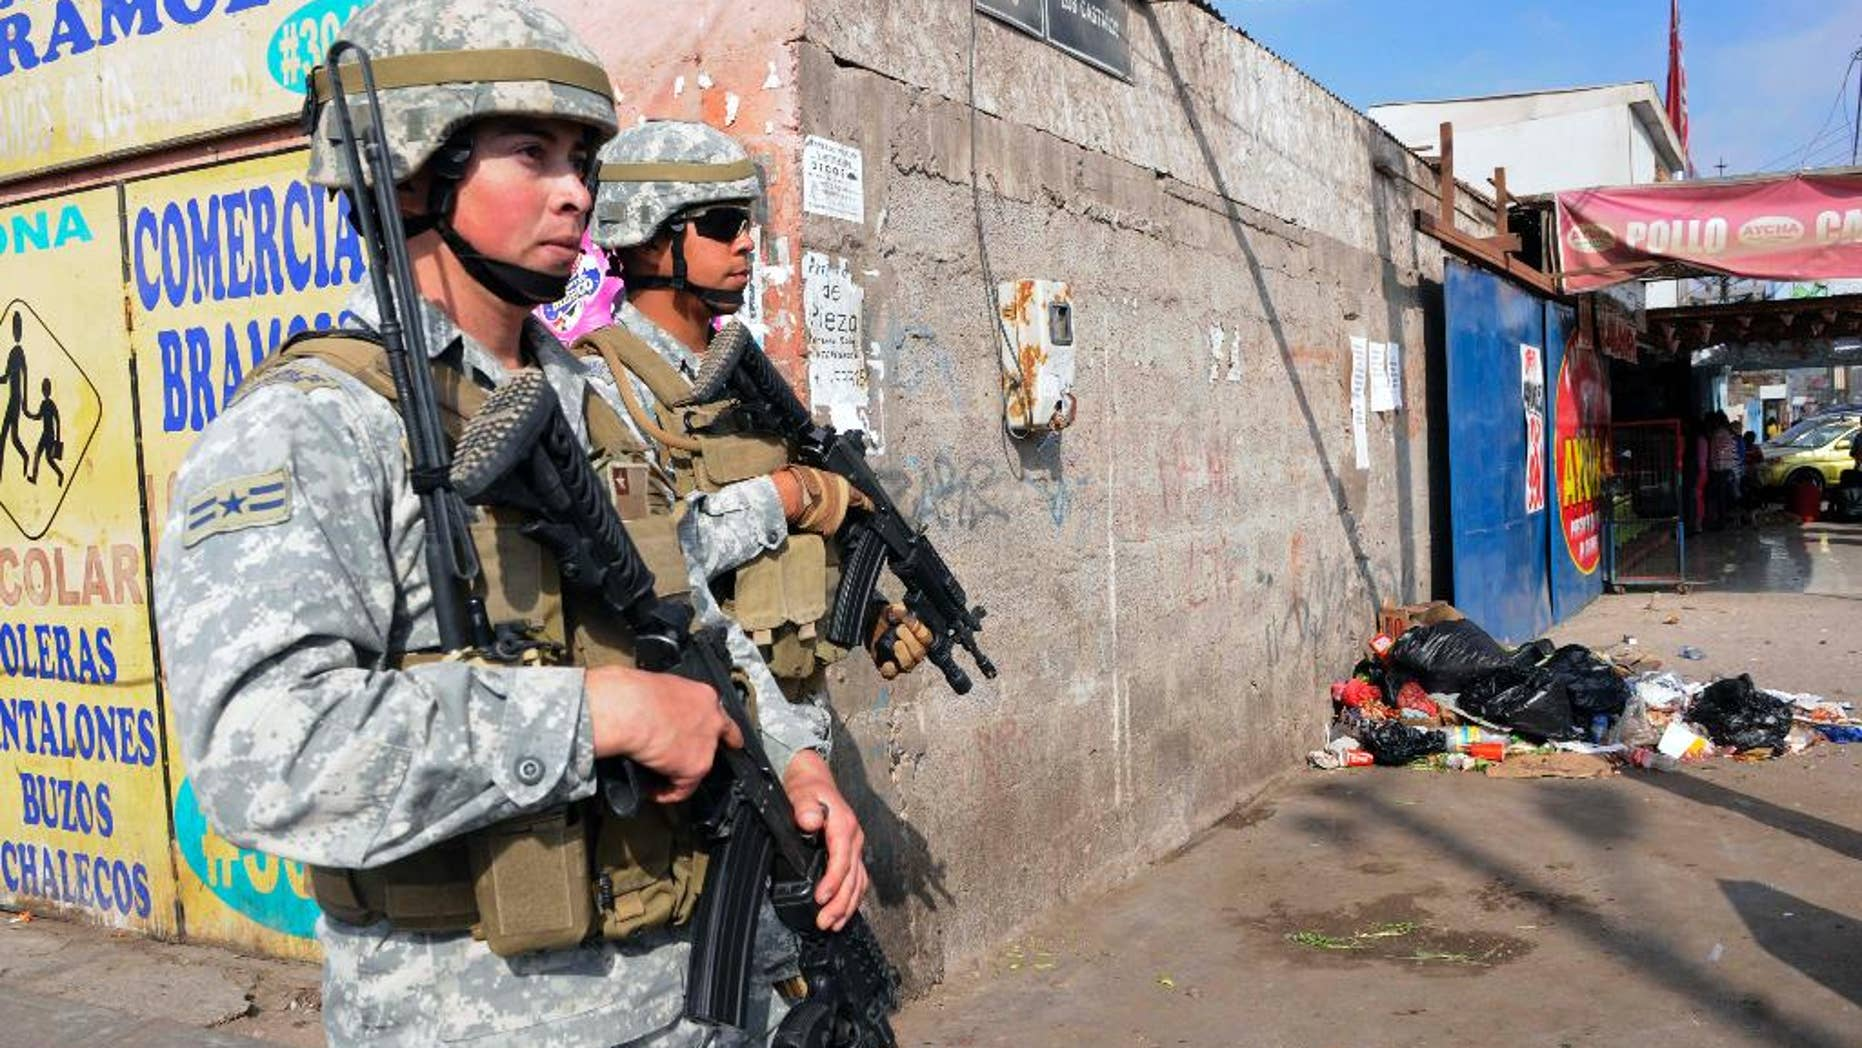 Soldiers patrol after earthquakes affected Alto Hospicio, Chile, Thursday, April 3, 2014. Chile is one of the world's most earthquake-prone countries, and tsunamis are a particular danger because the fault zone lies just offshore, where the Nazca tectonic plate plunges beneath the South American plate. A magnitude-8.2 earthquake hit Chile's Pacific coast late Tuesday. (AP Photo/Cristian Vivero)